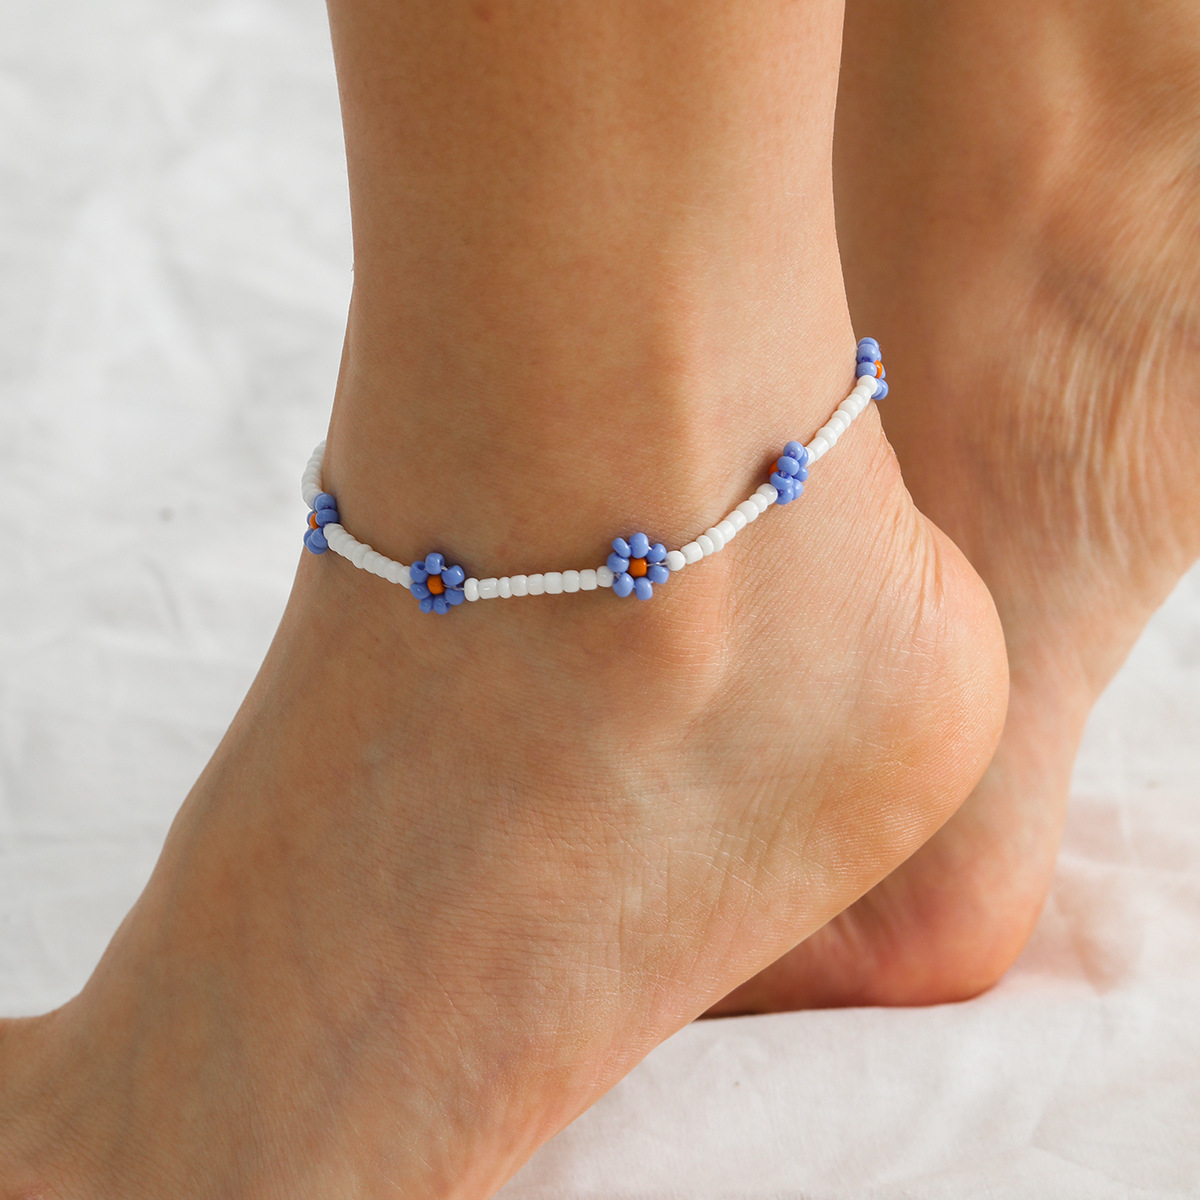 Bohemian Colorful Seed Beads Daisy Flower Anklets for Women Summer Ocean Beach Ankle Bracelet Foot Leg Jewelry 2020